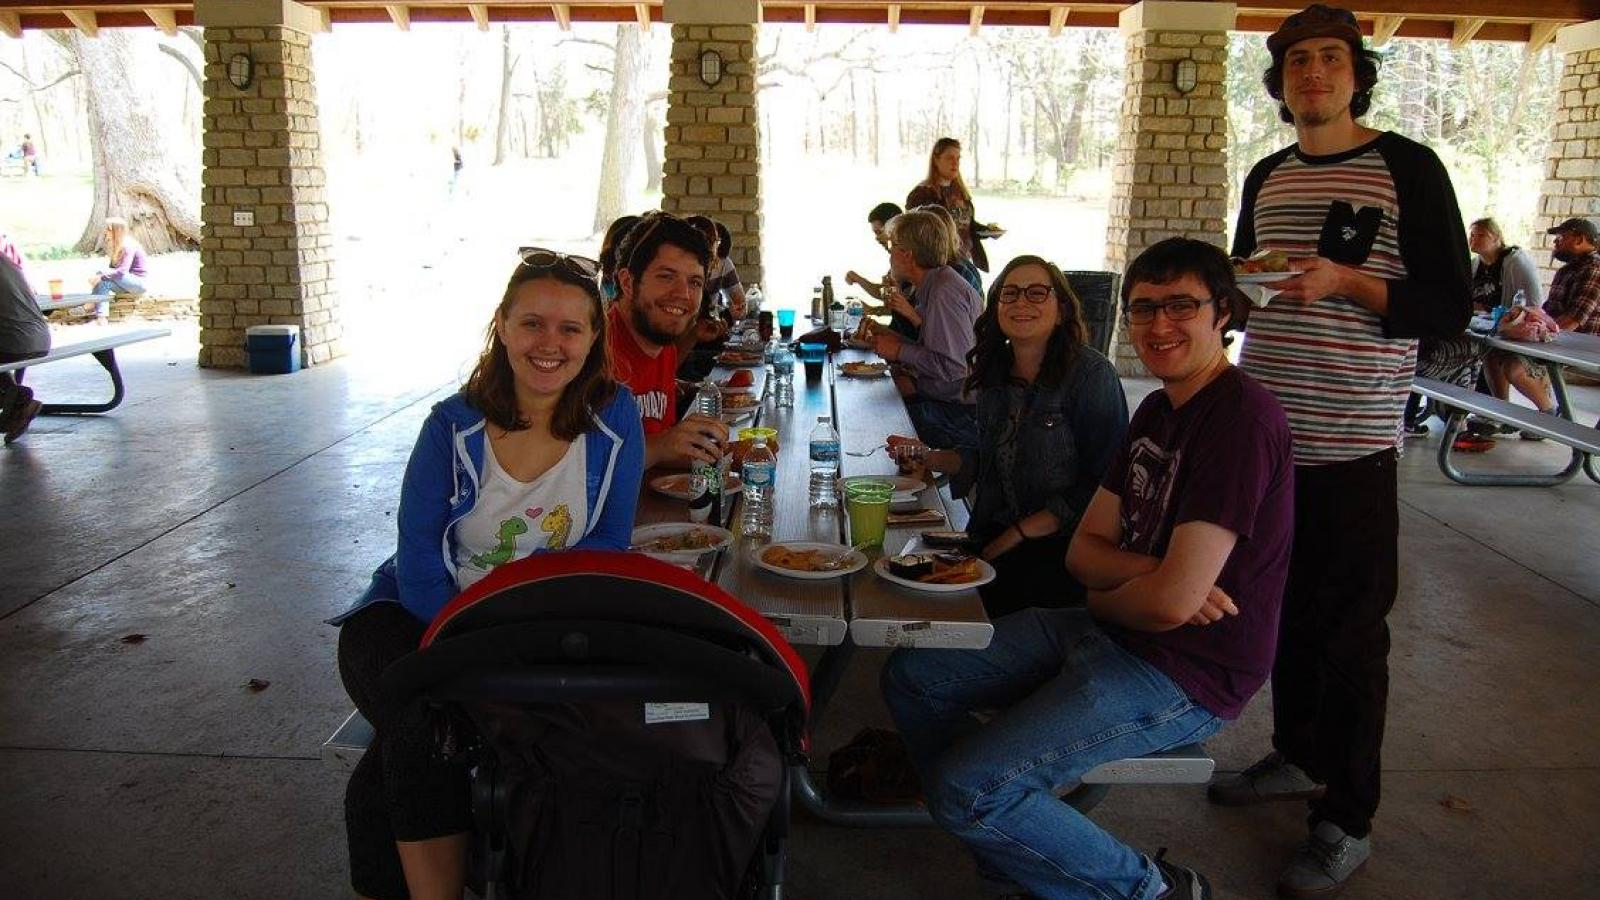 Graduate students enjoying the picnic at Highbanks Metro Park